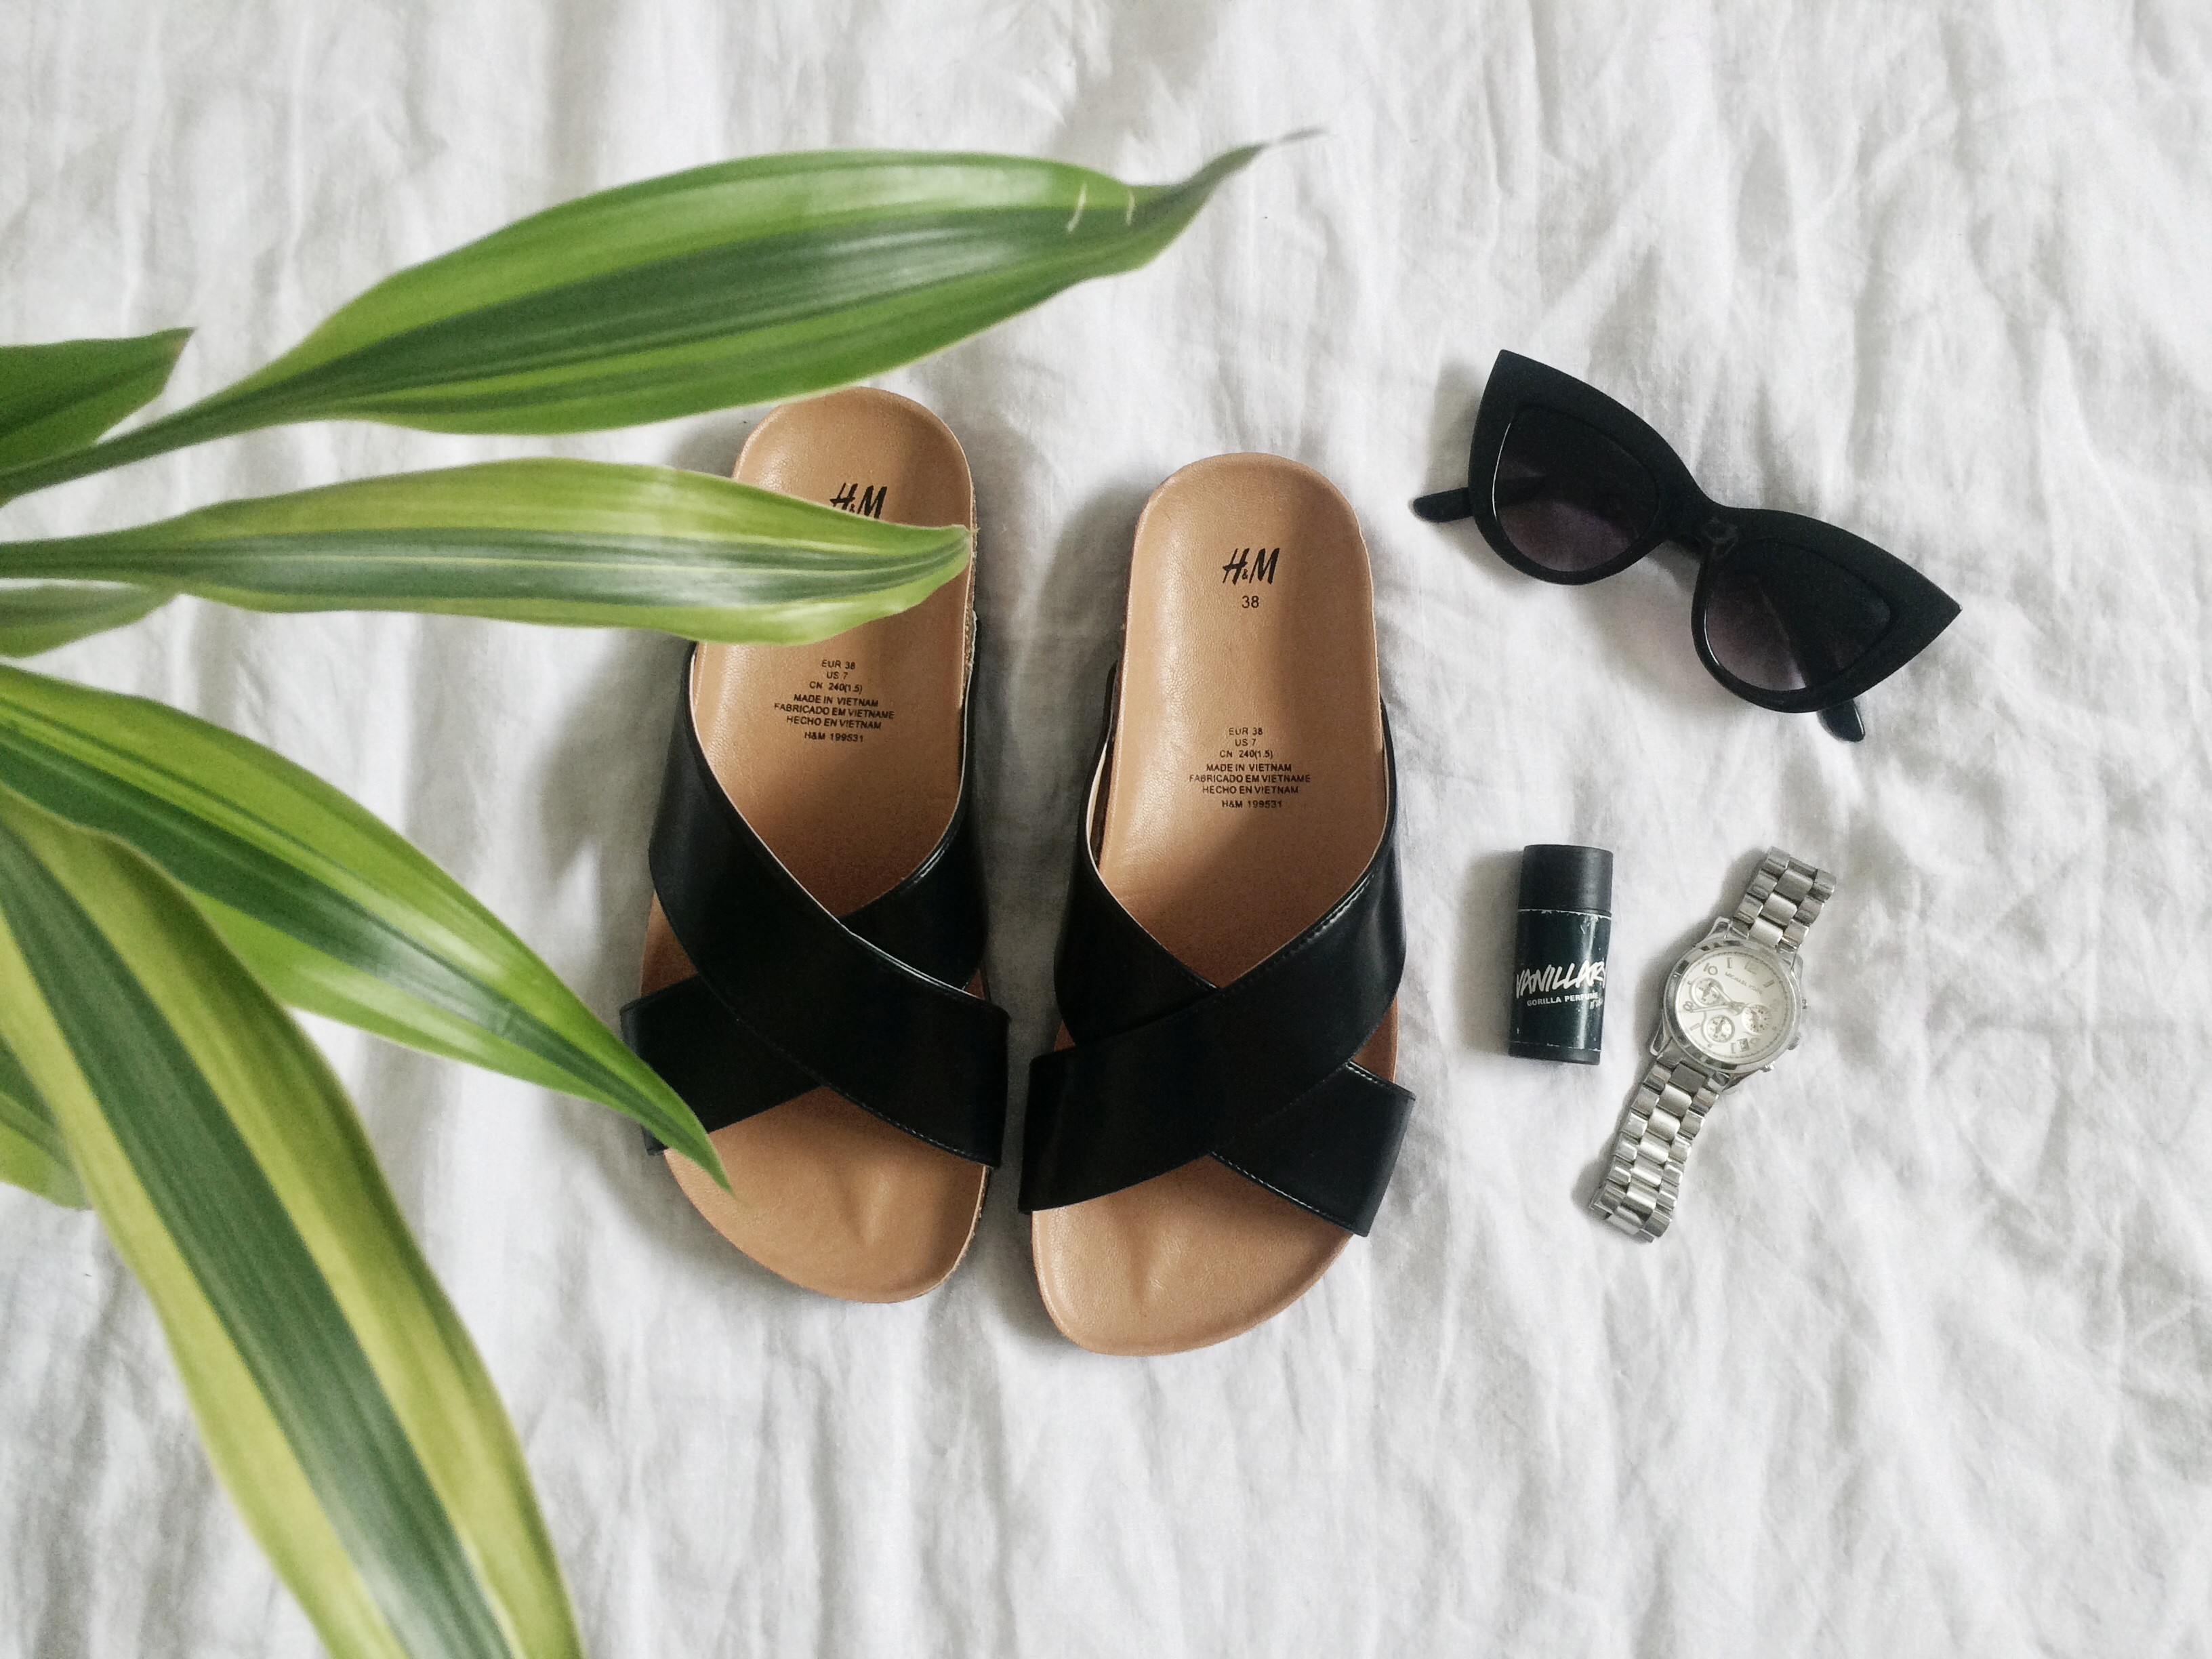 summer wardrobe essentials, cross strap sandals, isabel marant, dune, celine, birkenstock, dupe